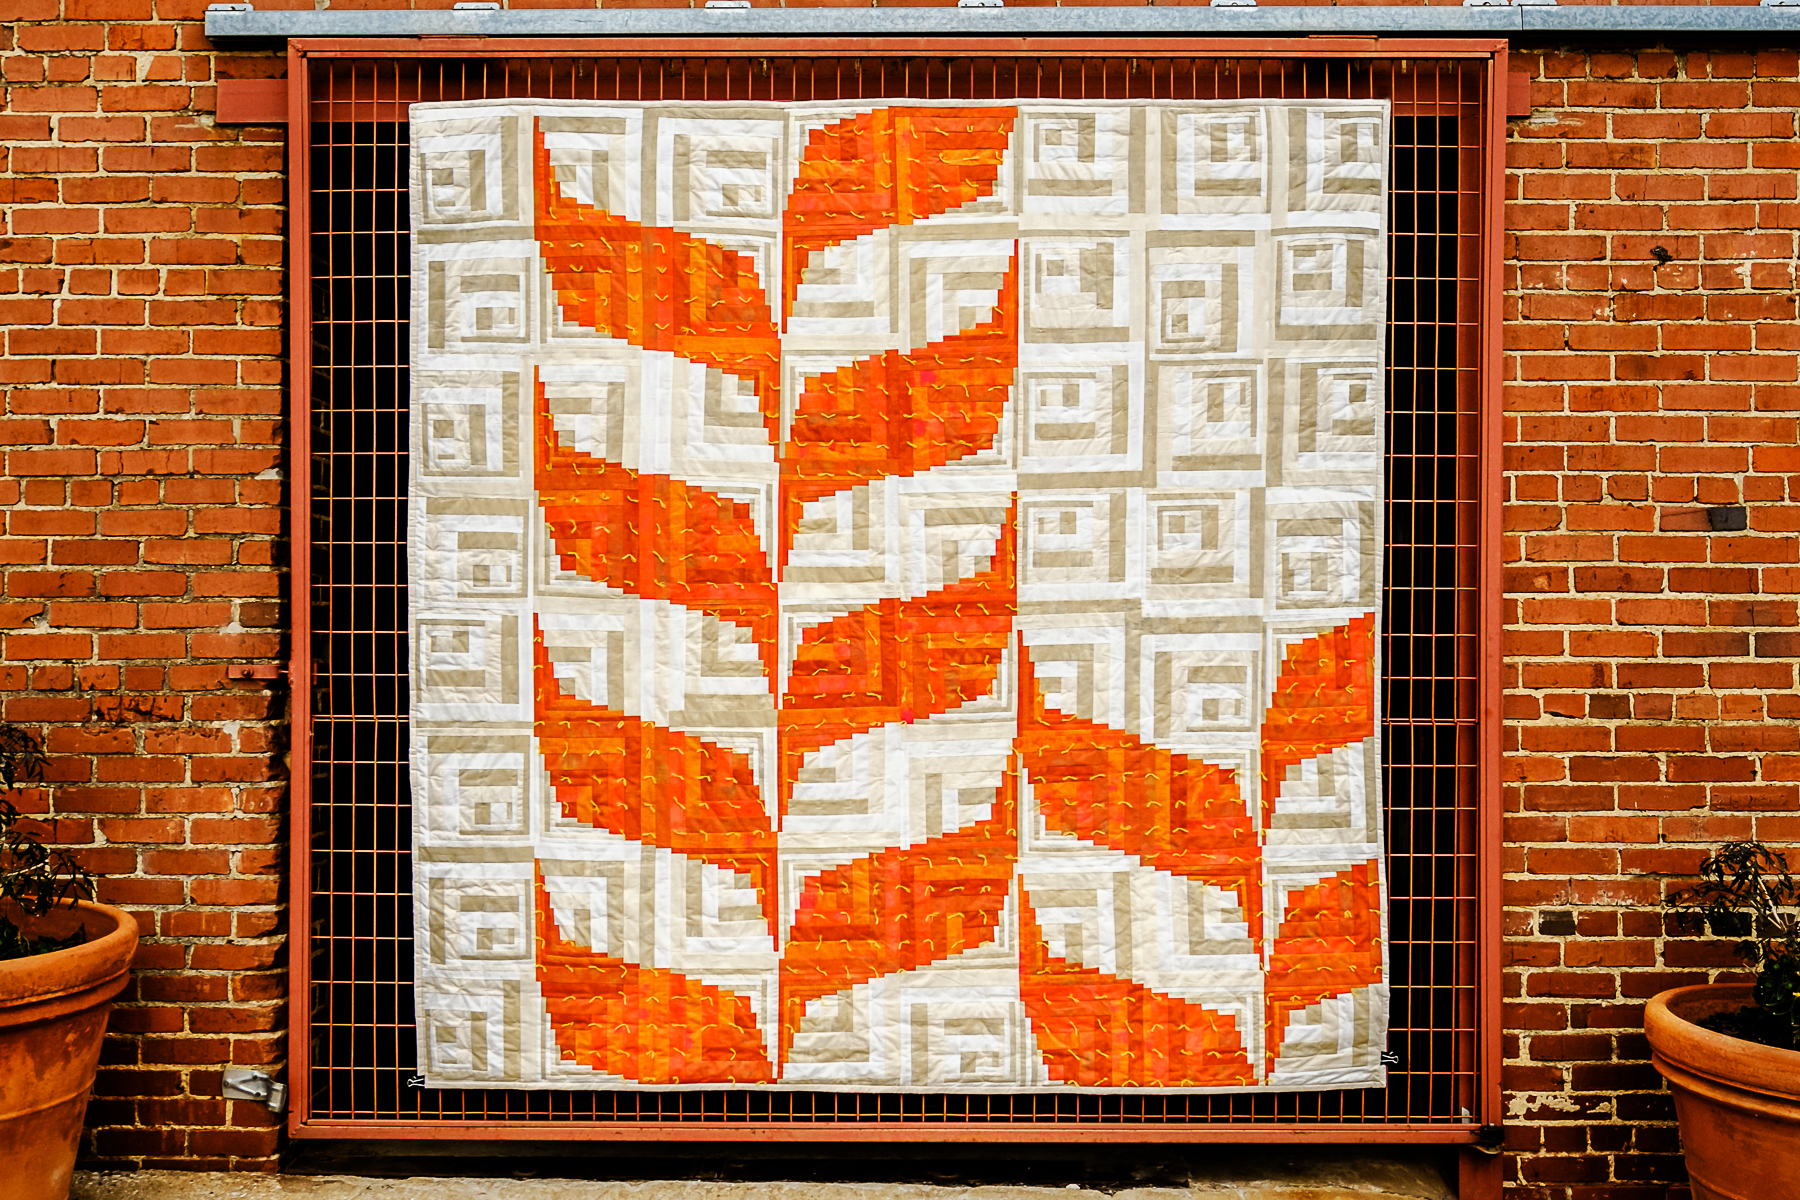 "3rd   Place: Prairie Silk   89"" x 90"" Pieced and quilted by Agnes Stadler, Ann Solinski, Debbie Wanzer, Elizabeth Richards, Katie Cox Oklahoma City MQG, Edmond, Oklahoma"